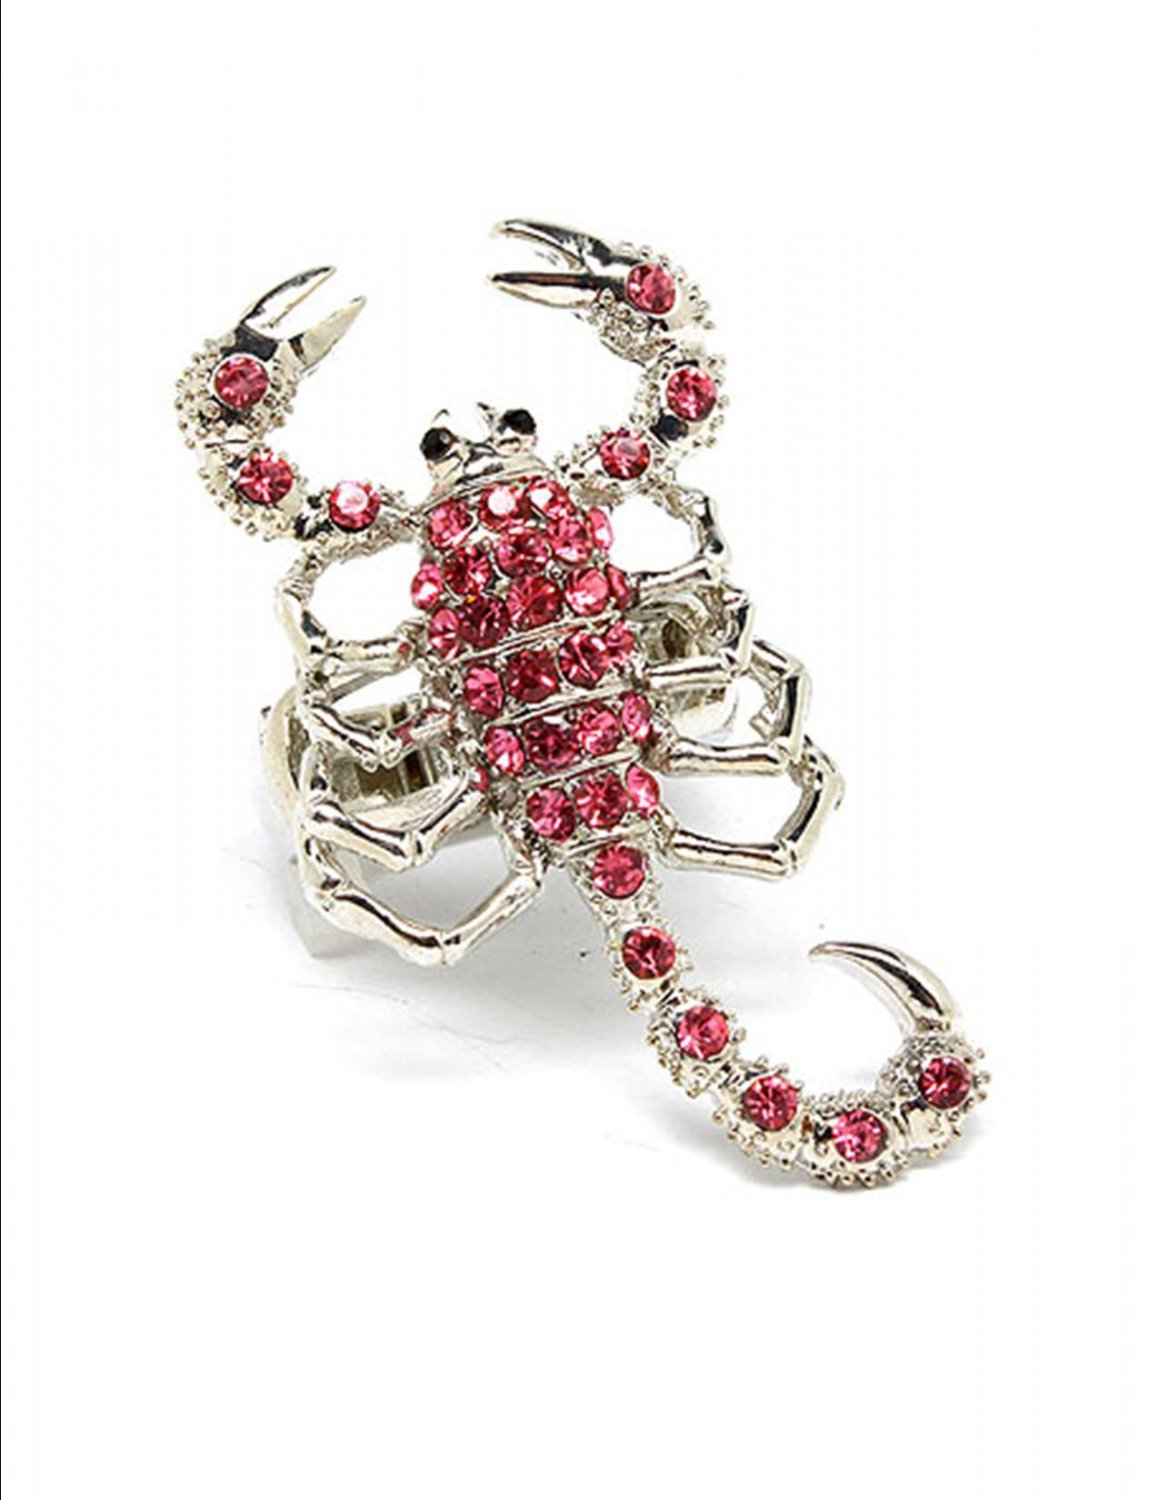 Huge Pink Austrian Crystal Rhinestone Adjustable Stretch Large Chunky Scorpion Ring